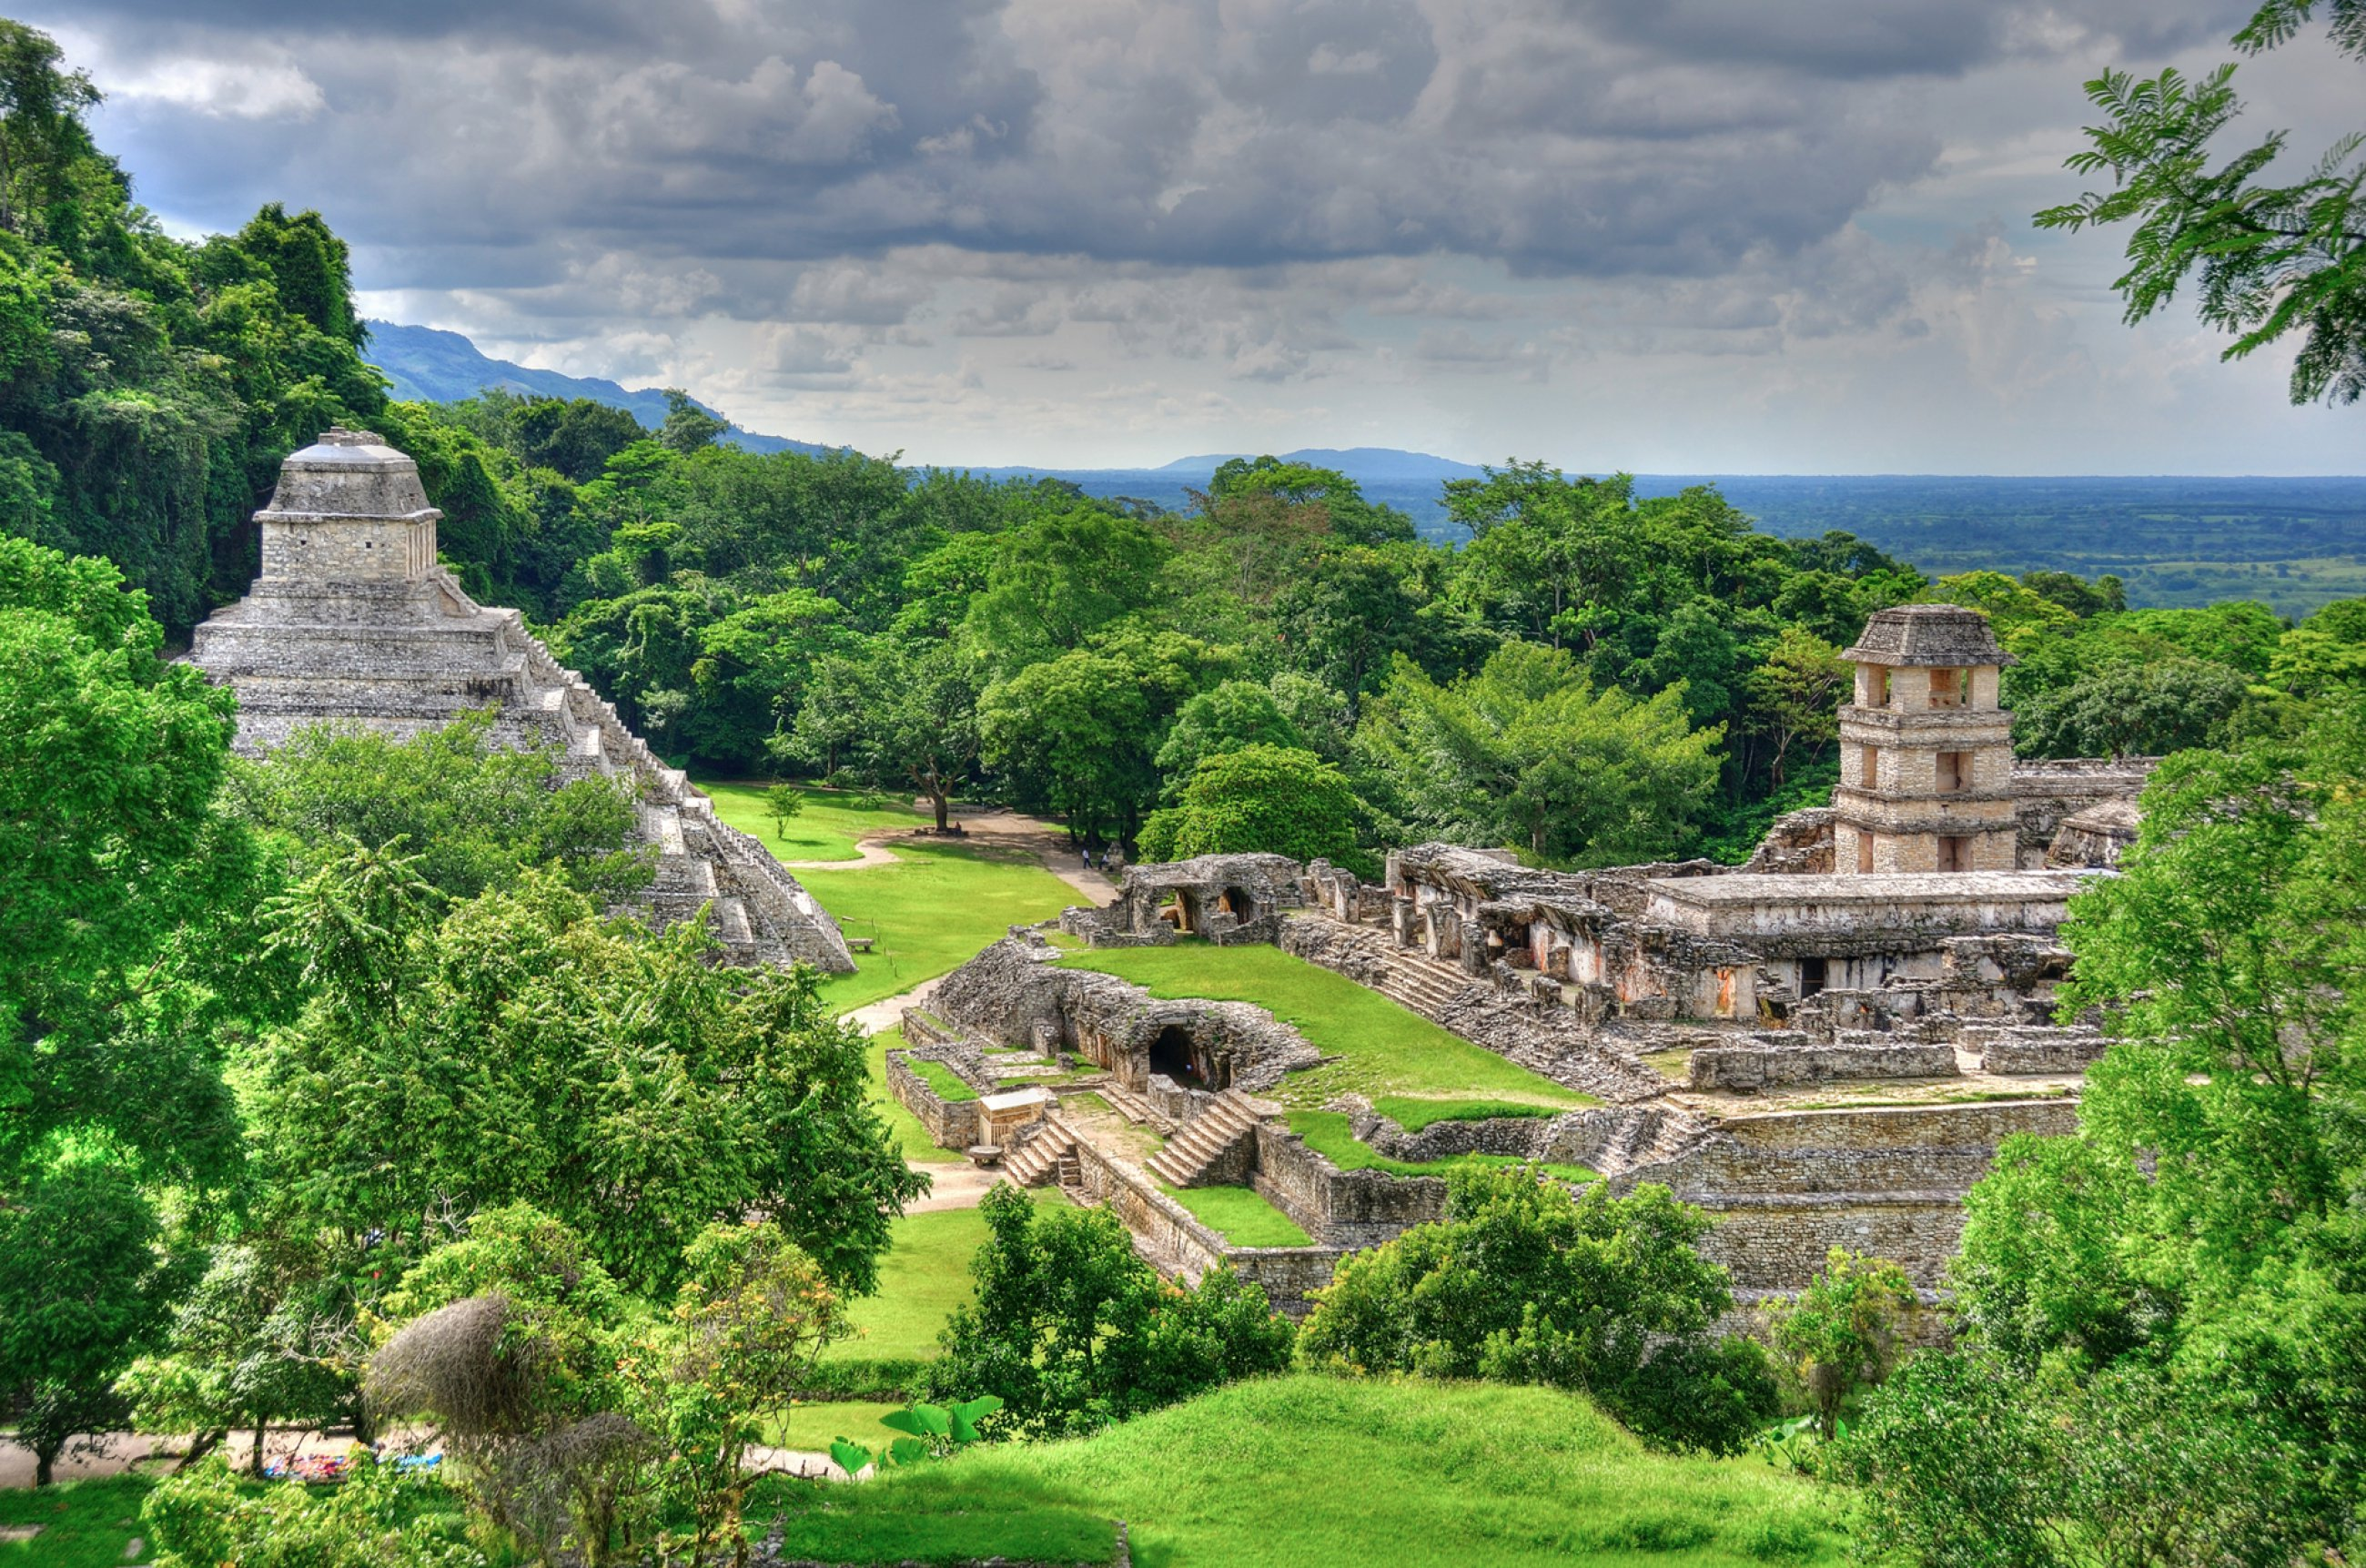 https://bubo.sk/uploads/galleries/3464/palenque.jpg